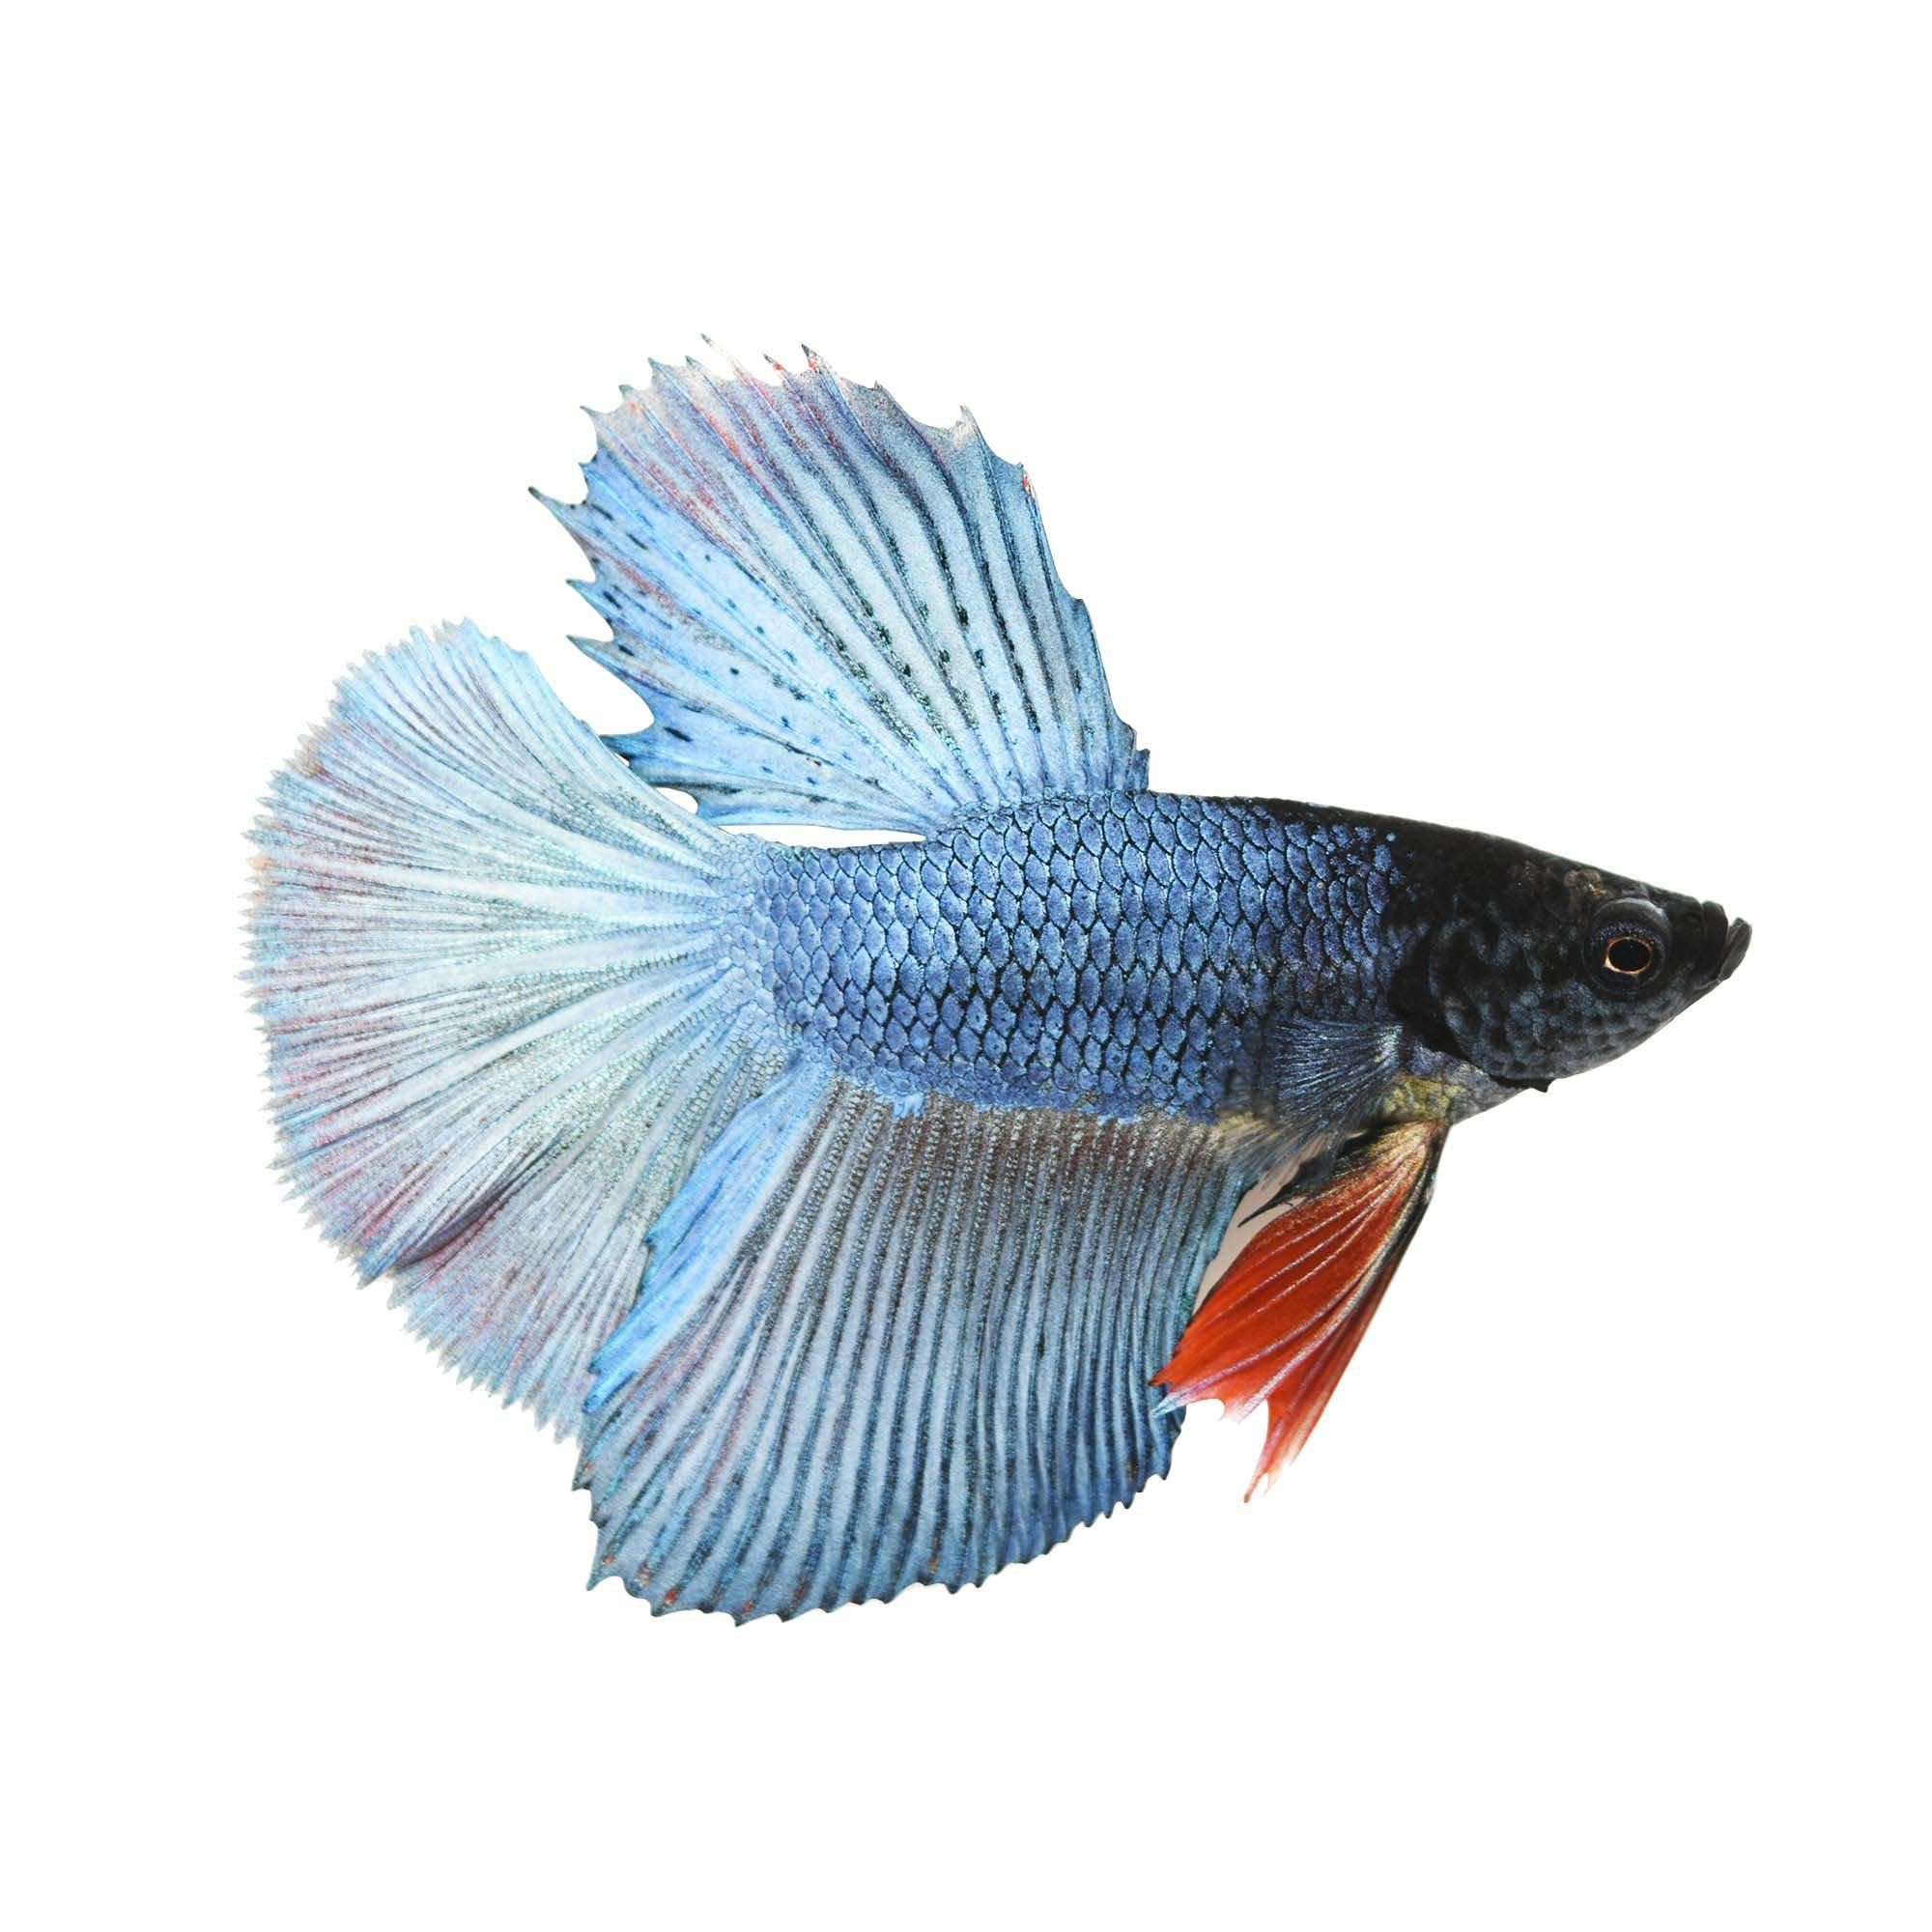 Male Deltatail Betta (Betta splendens) Betta, Betta fish